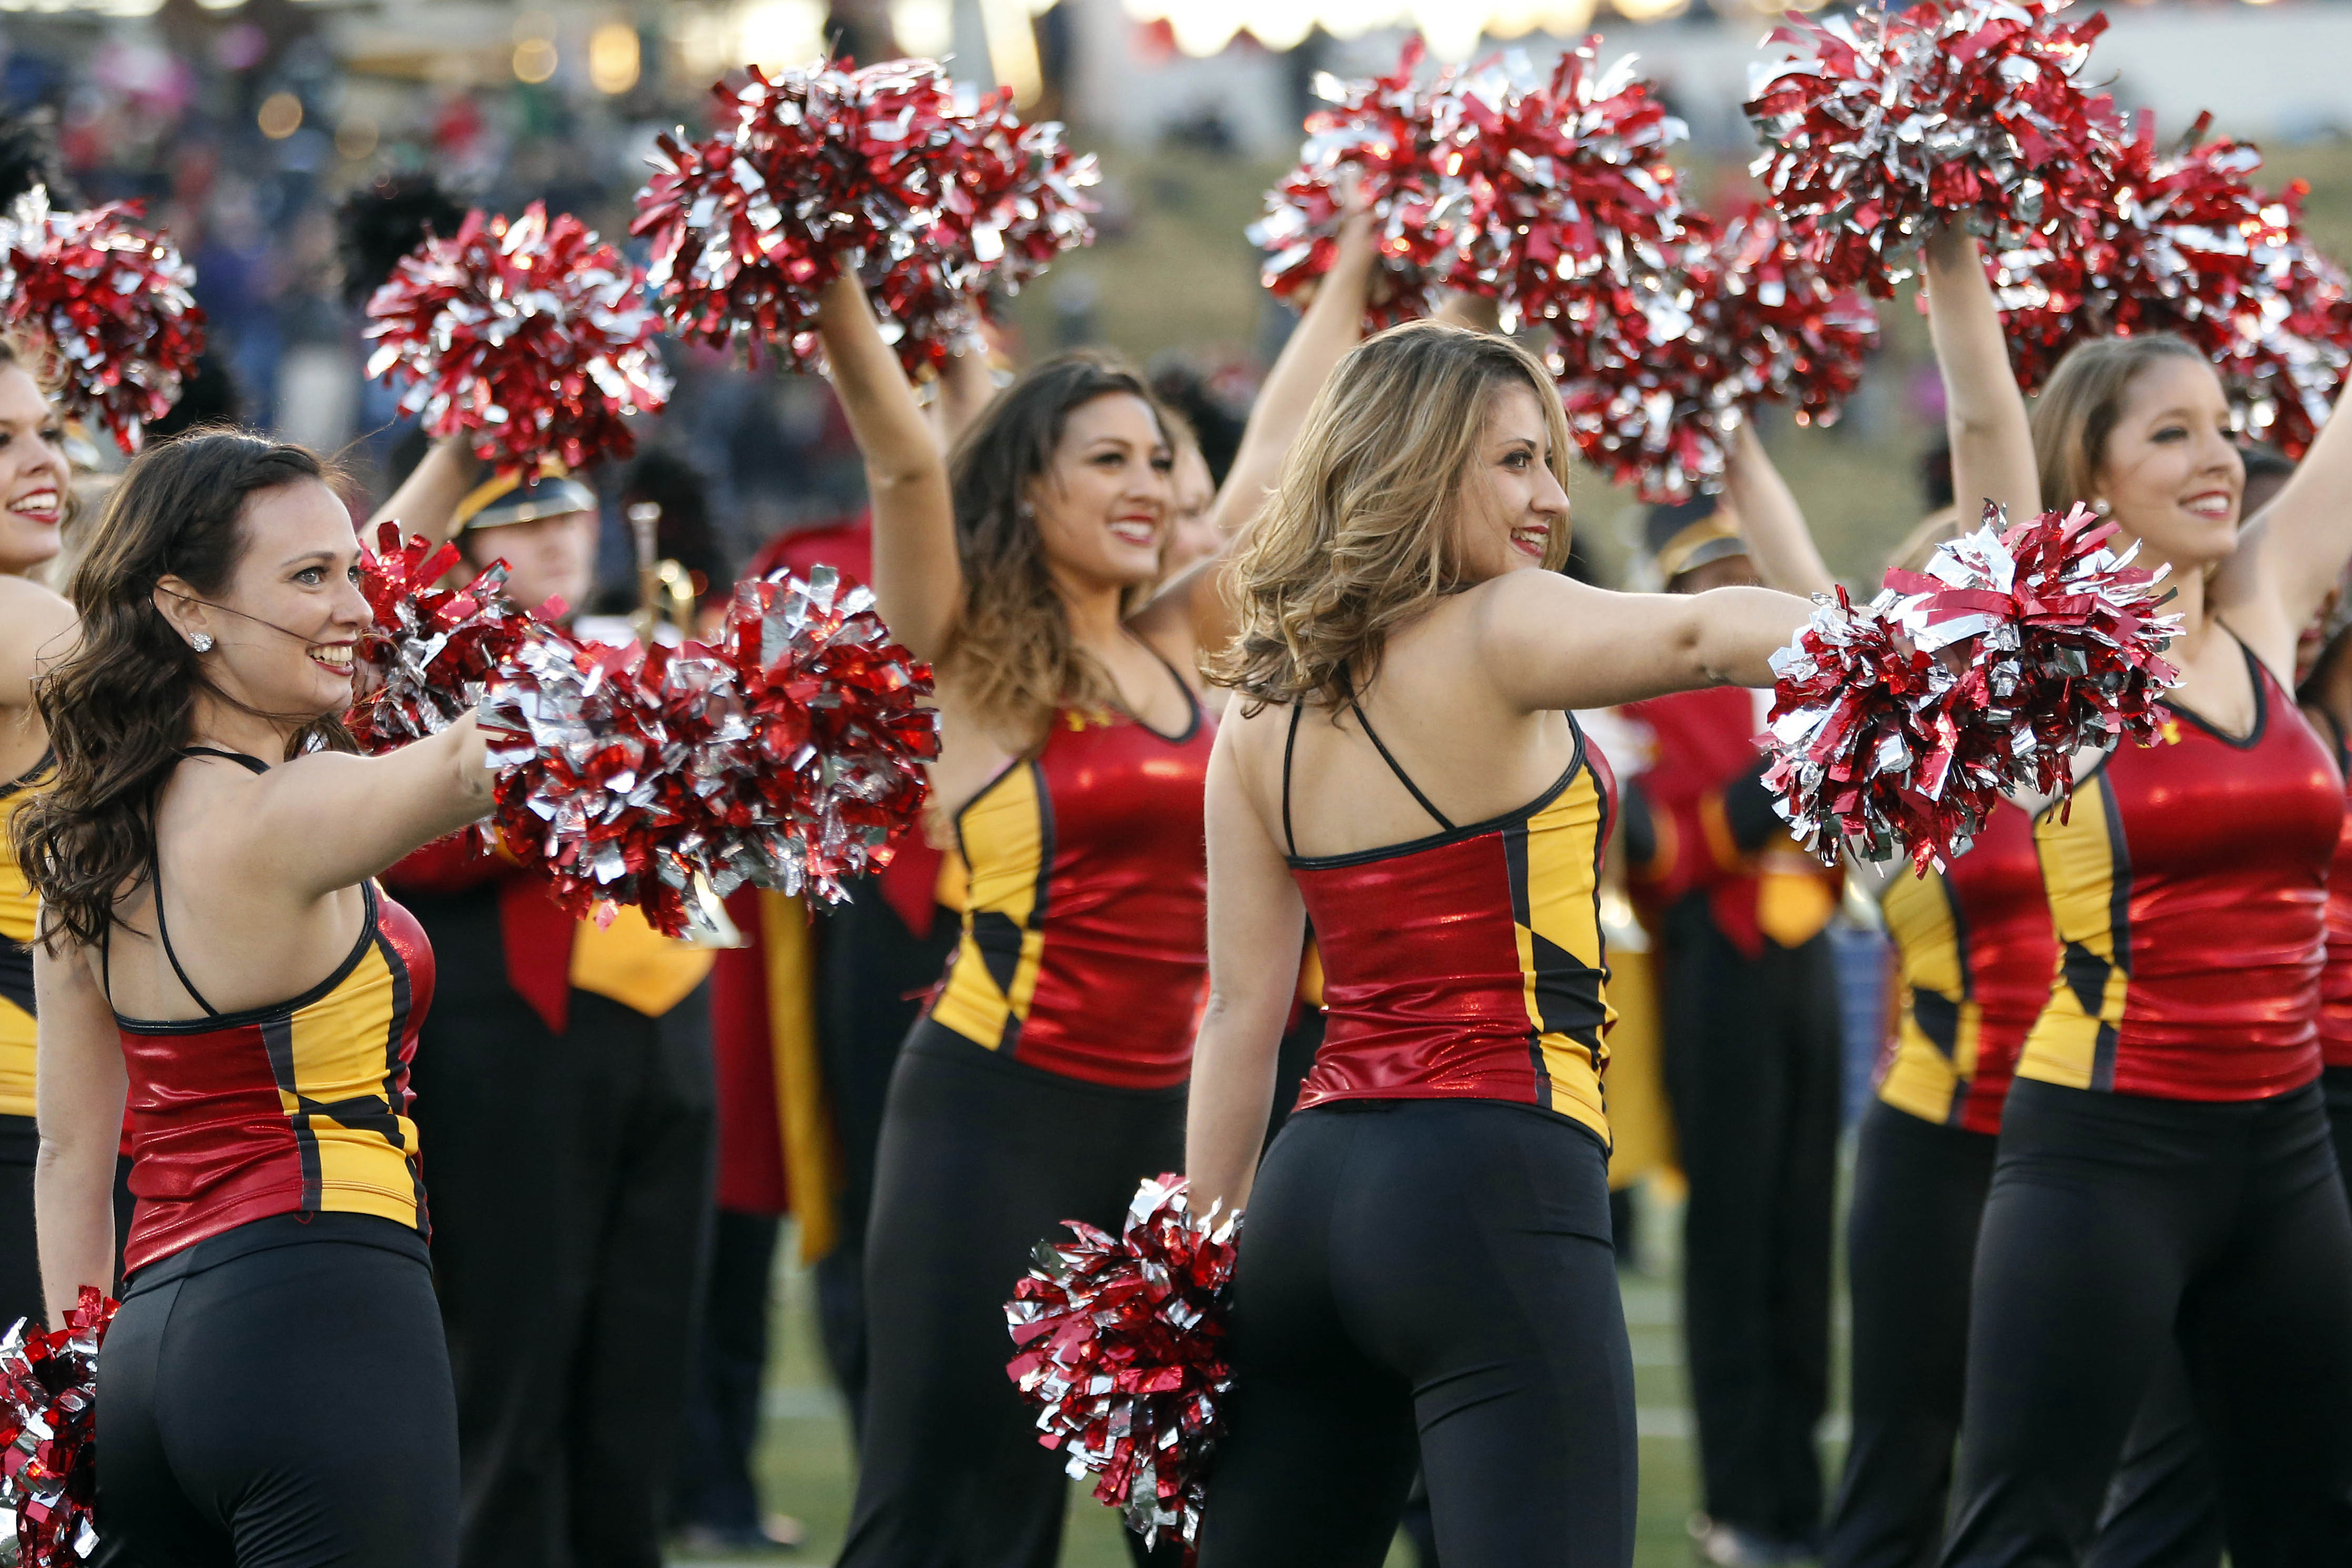 The Maryland Terrapins cheerleaders dance on the field during a stoppage in play against the Marshall Thundering Herd during the 2013 Military Bowl at Navy Marine Corps Memorial Stadium. (Geoff Burke/USA TODAY Sports)